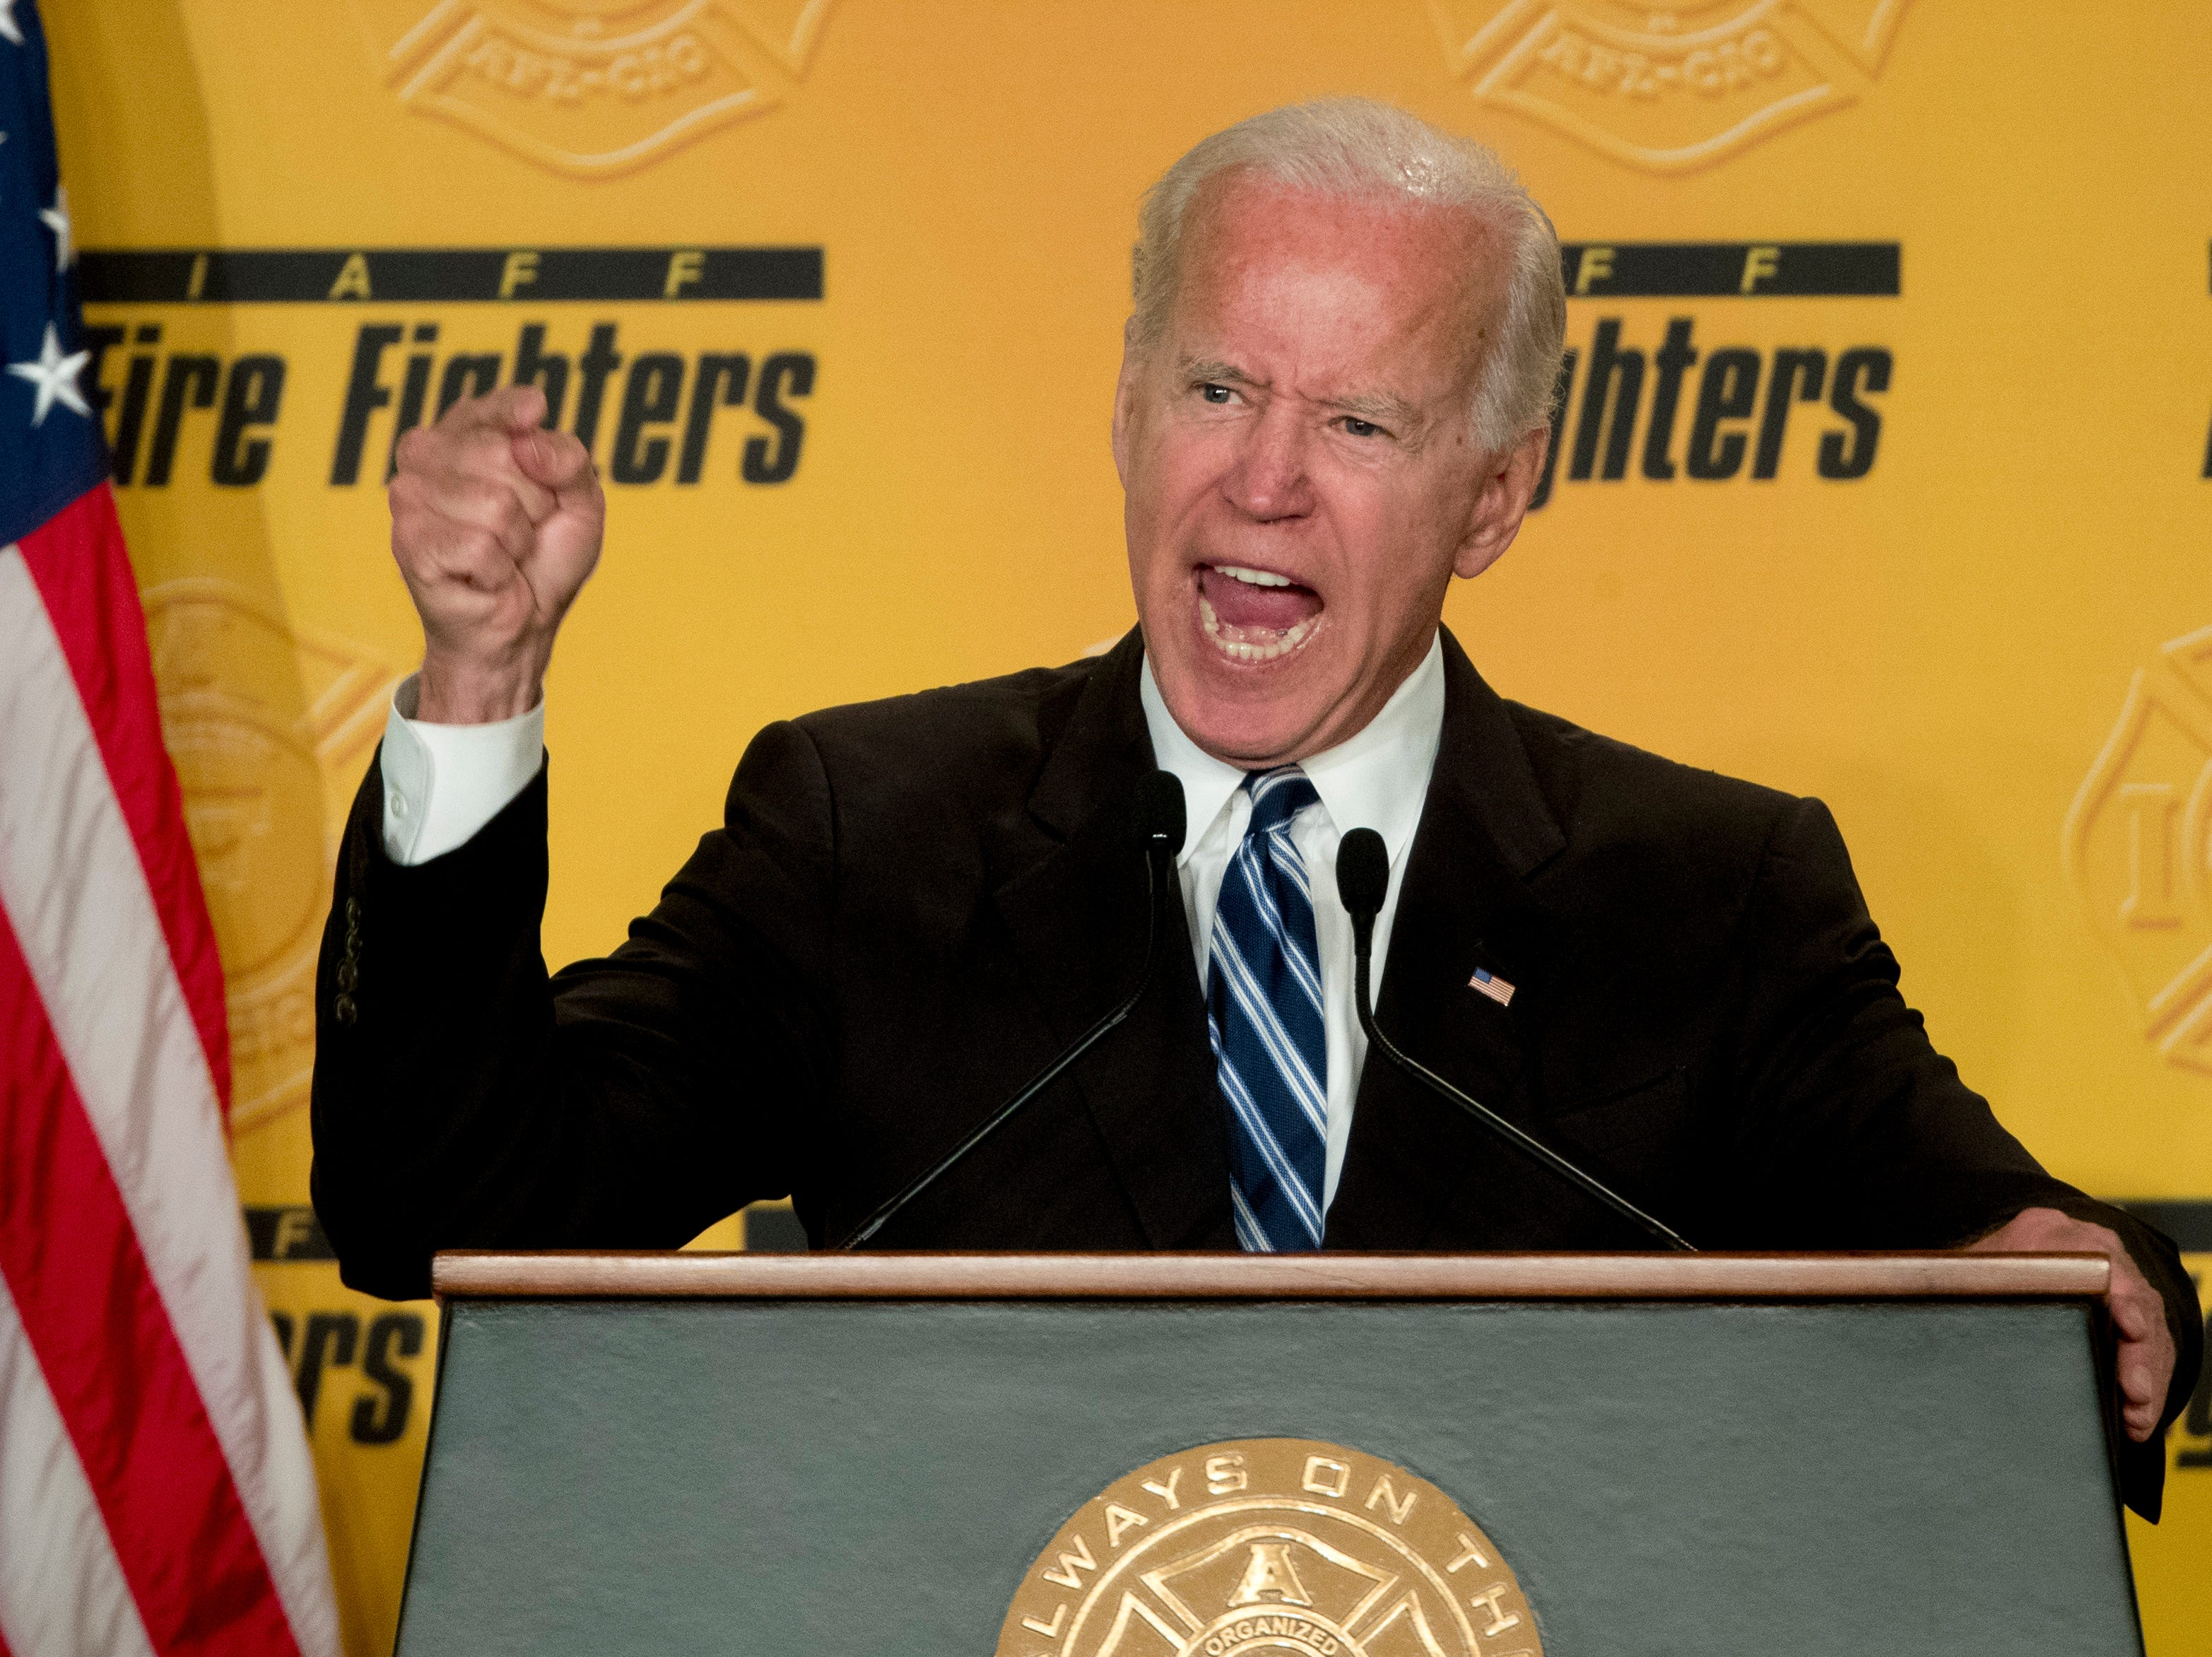 Former Vice President Joe Biden speaks to the International Association of Firefighters at the Hyatt Regency on Capitol Hill in Washington, Tuesday, March 12, 2019, amid growing expectations he'll soon announce he's running for president.